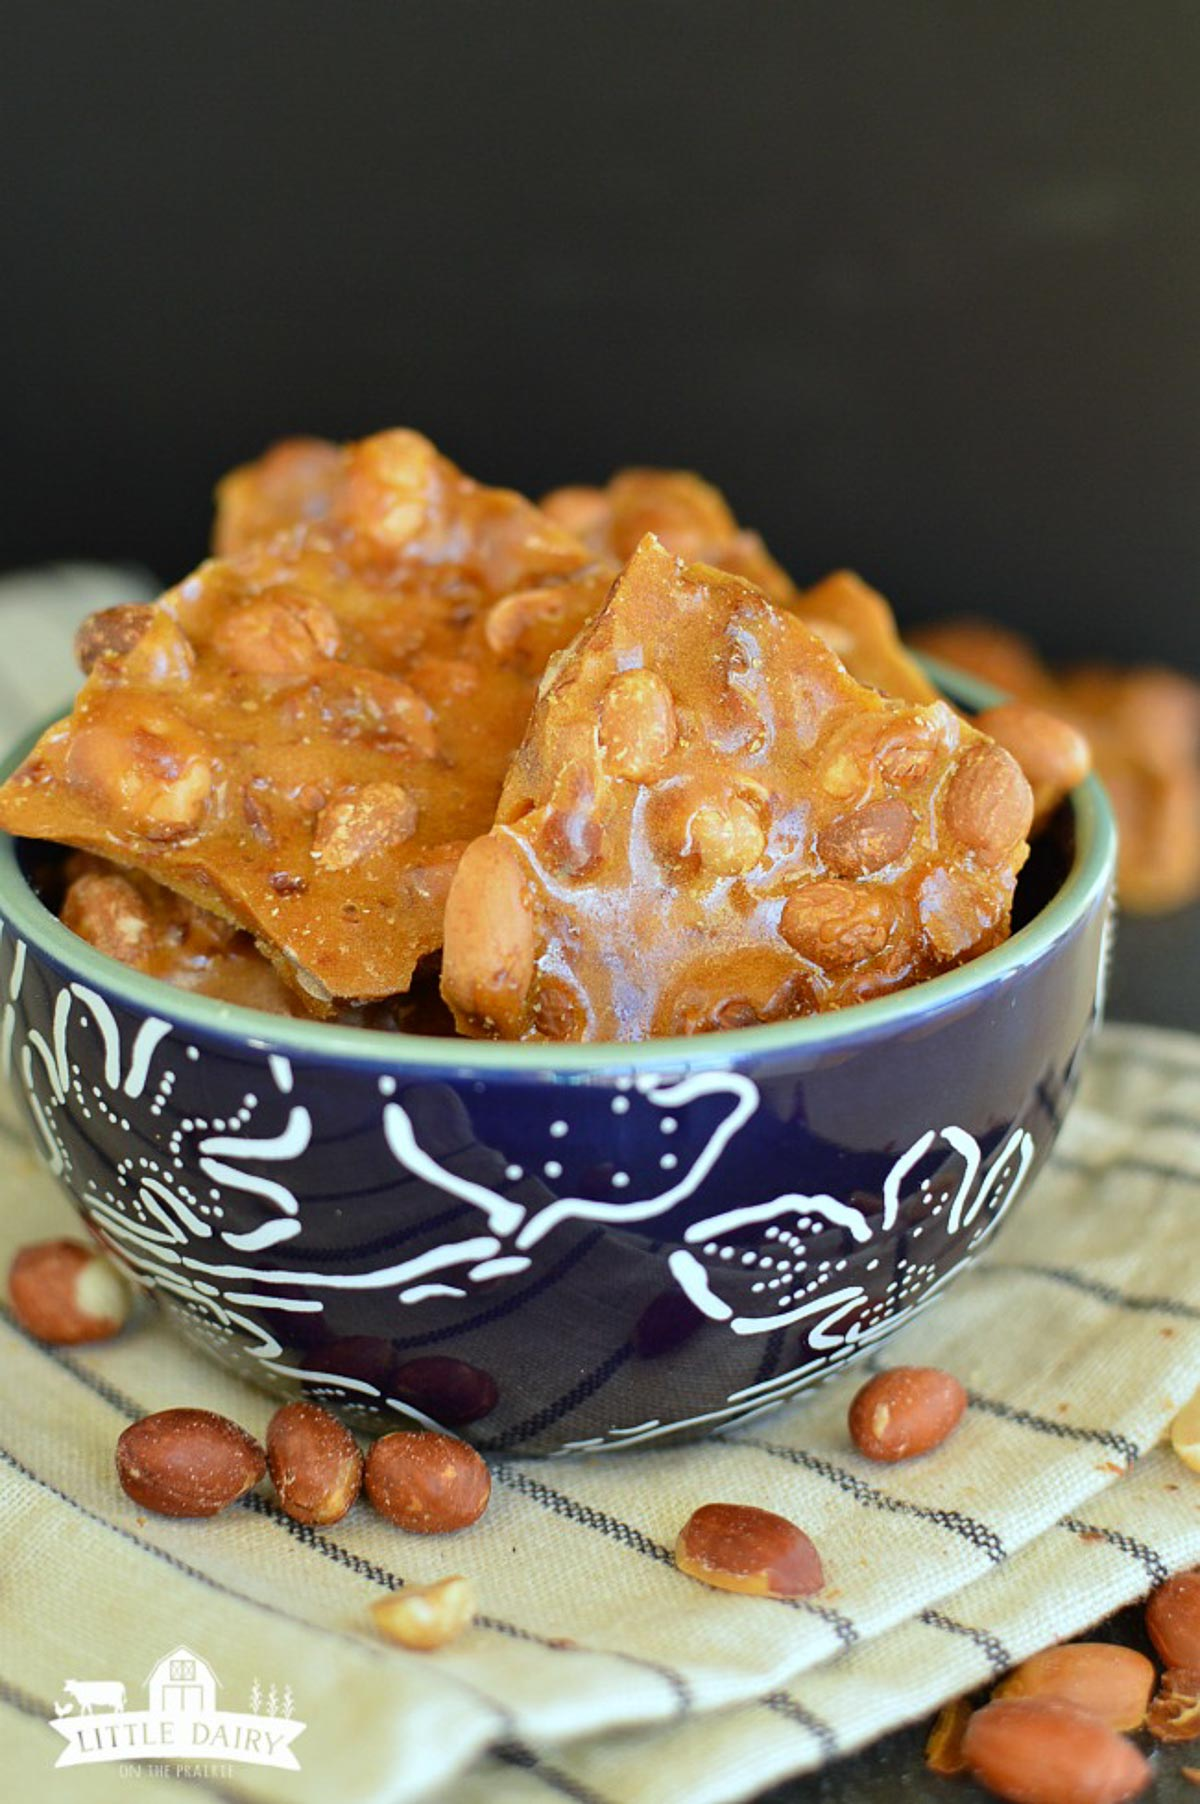 A blue bowl filled with homemade peanut brittle candy.